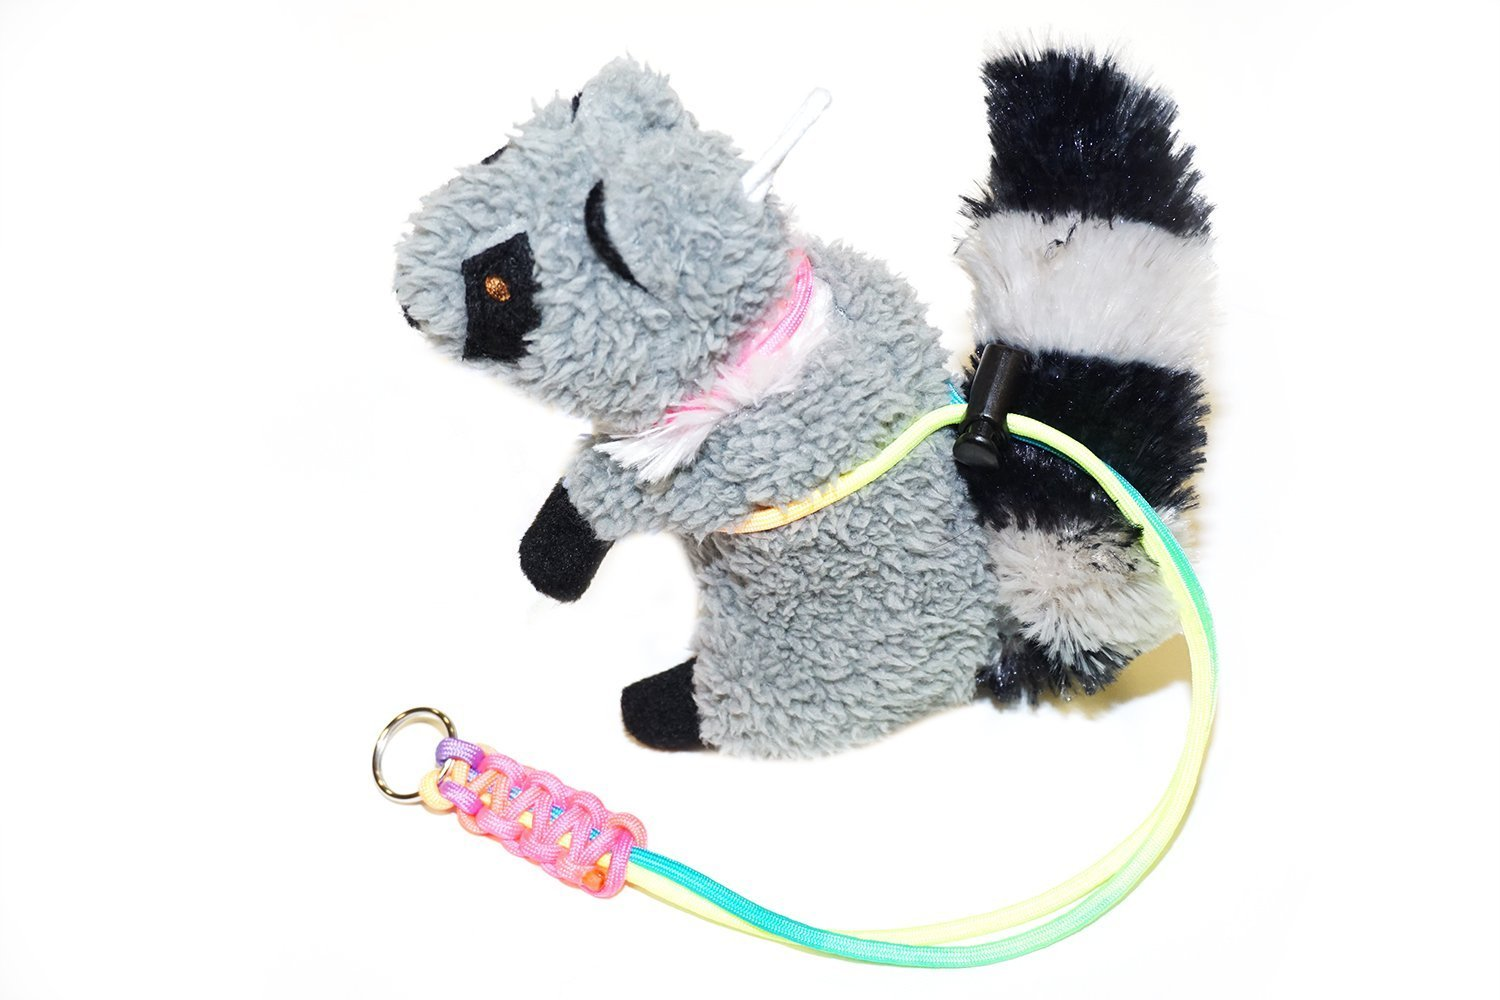 How To Make A Paracord Ferret Harness Wire Data Store Gtgt 944 2 Brake System Rear Diagram Amazon Com Escape Artist Little One Size Rh Bracelet Step